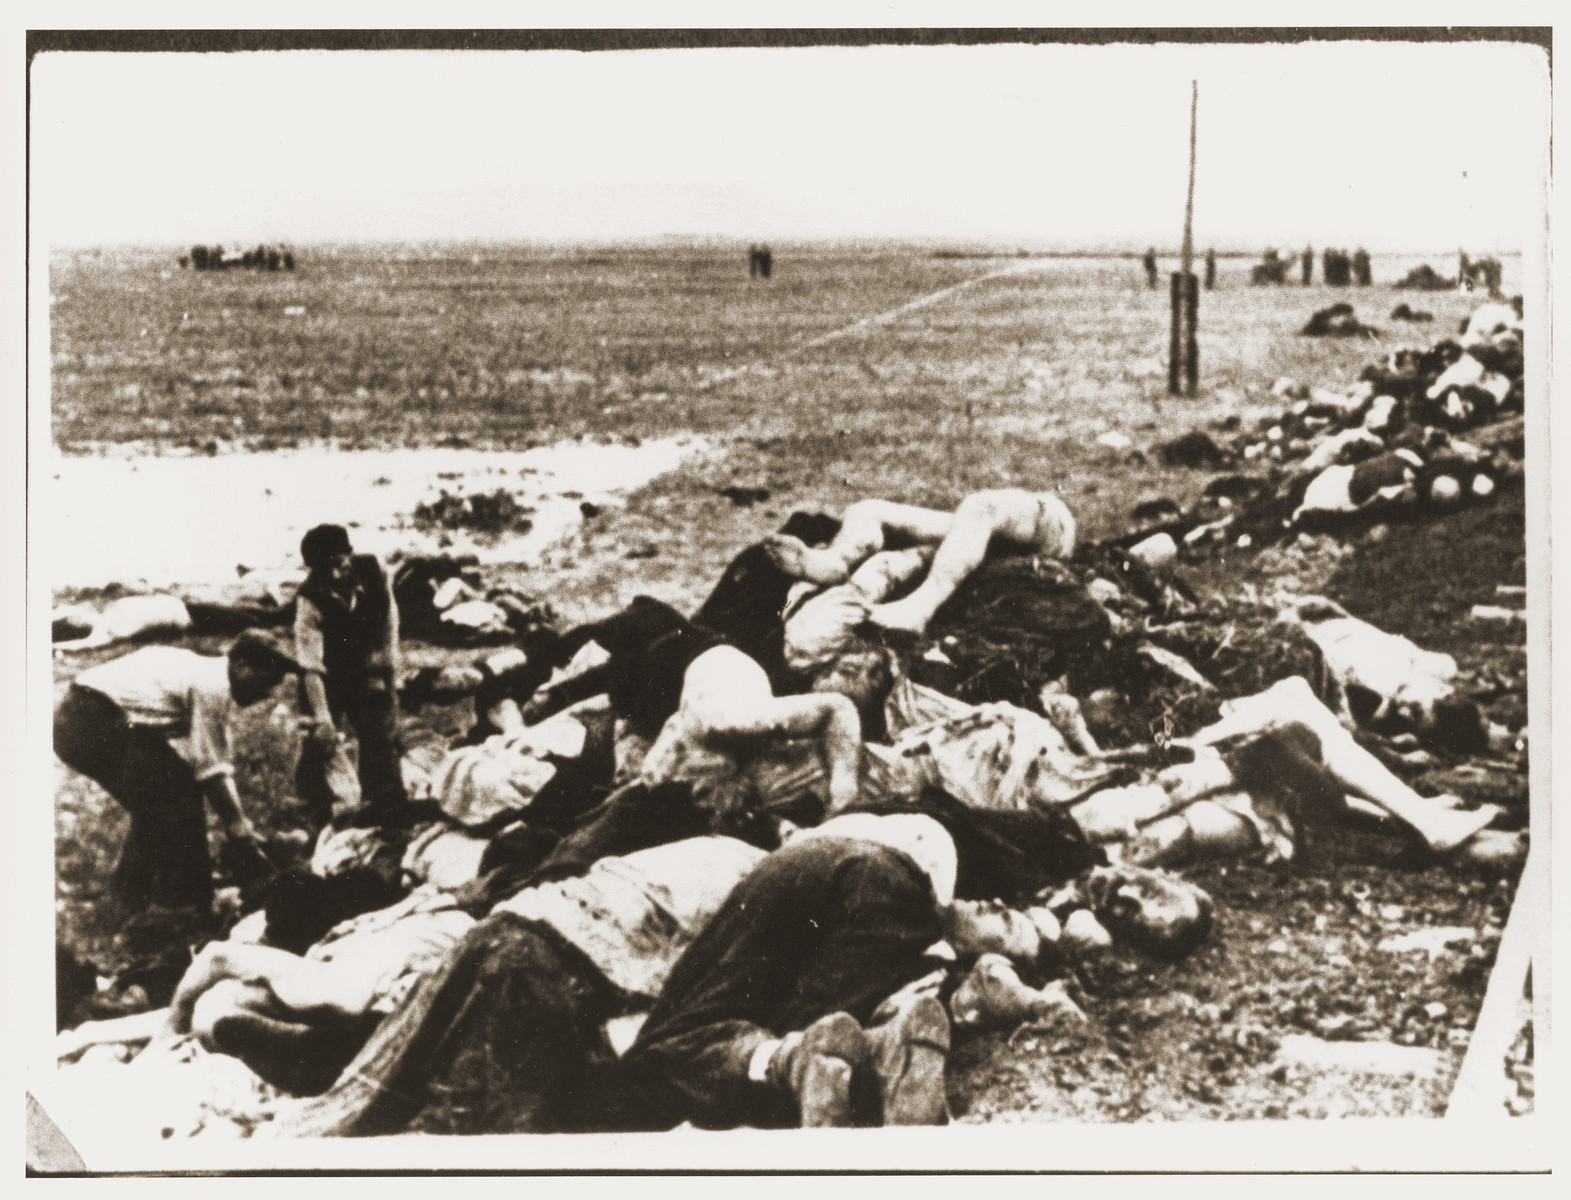 Civilians begin to lay out for burial the bodies of Jews removed from the Iasi death train during a stop on the journey.